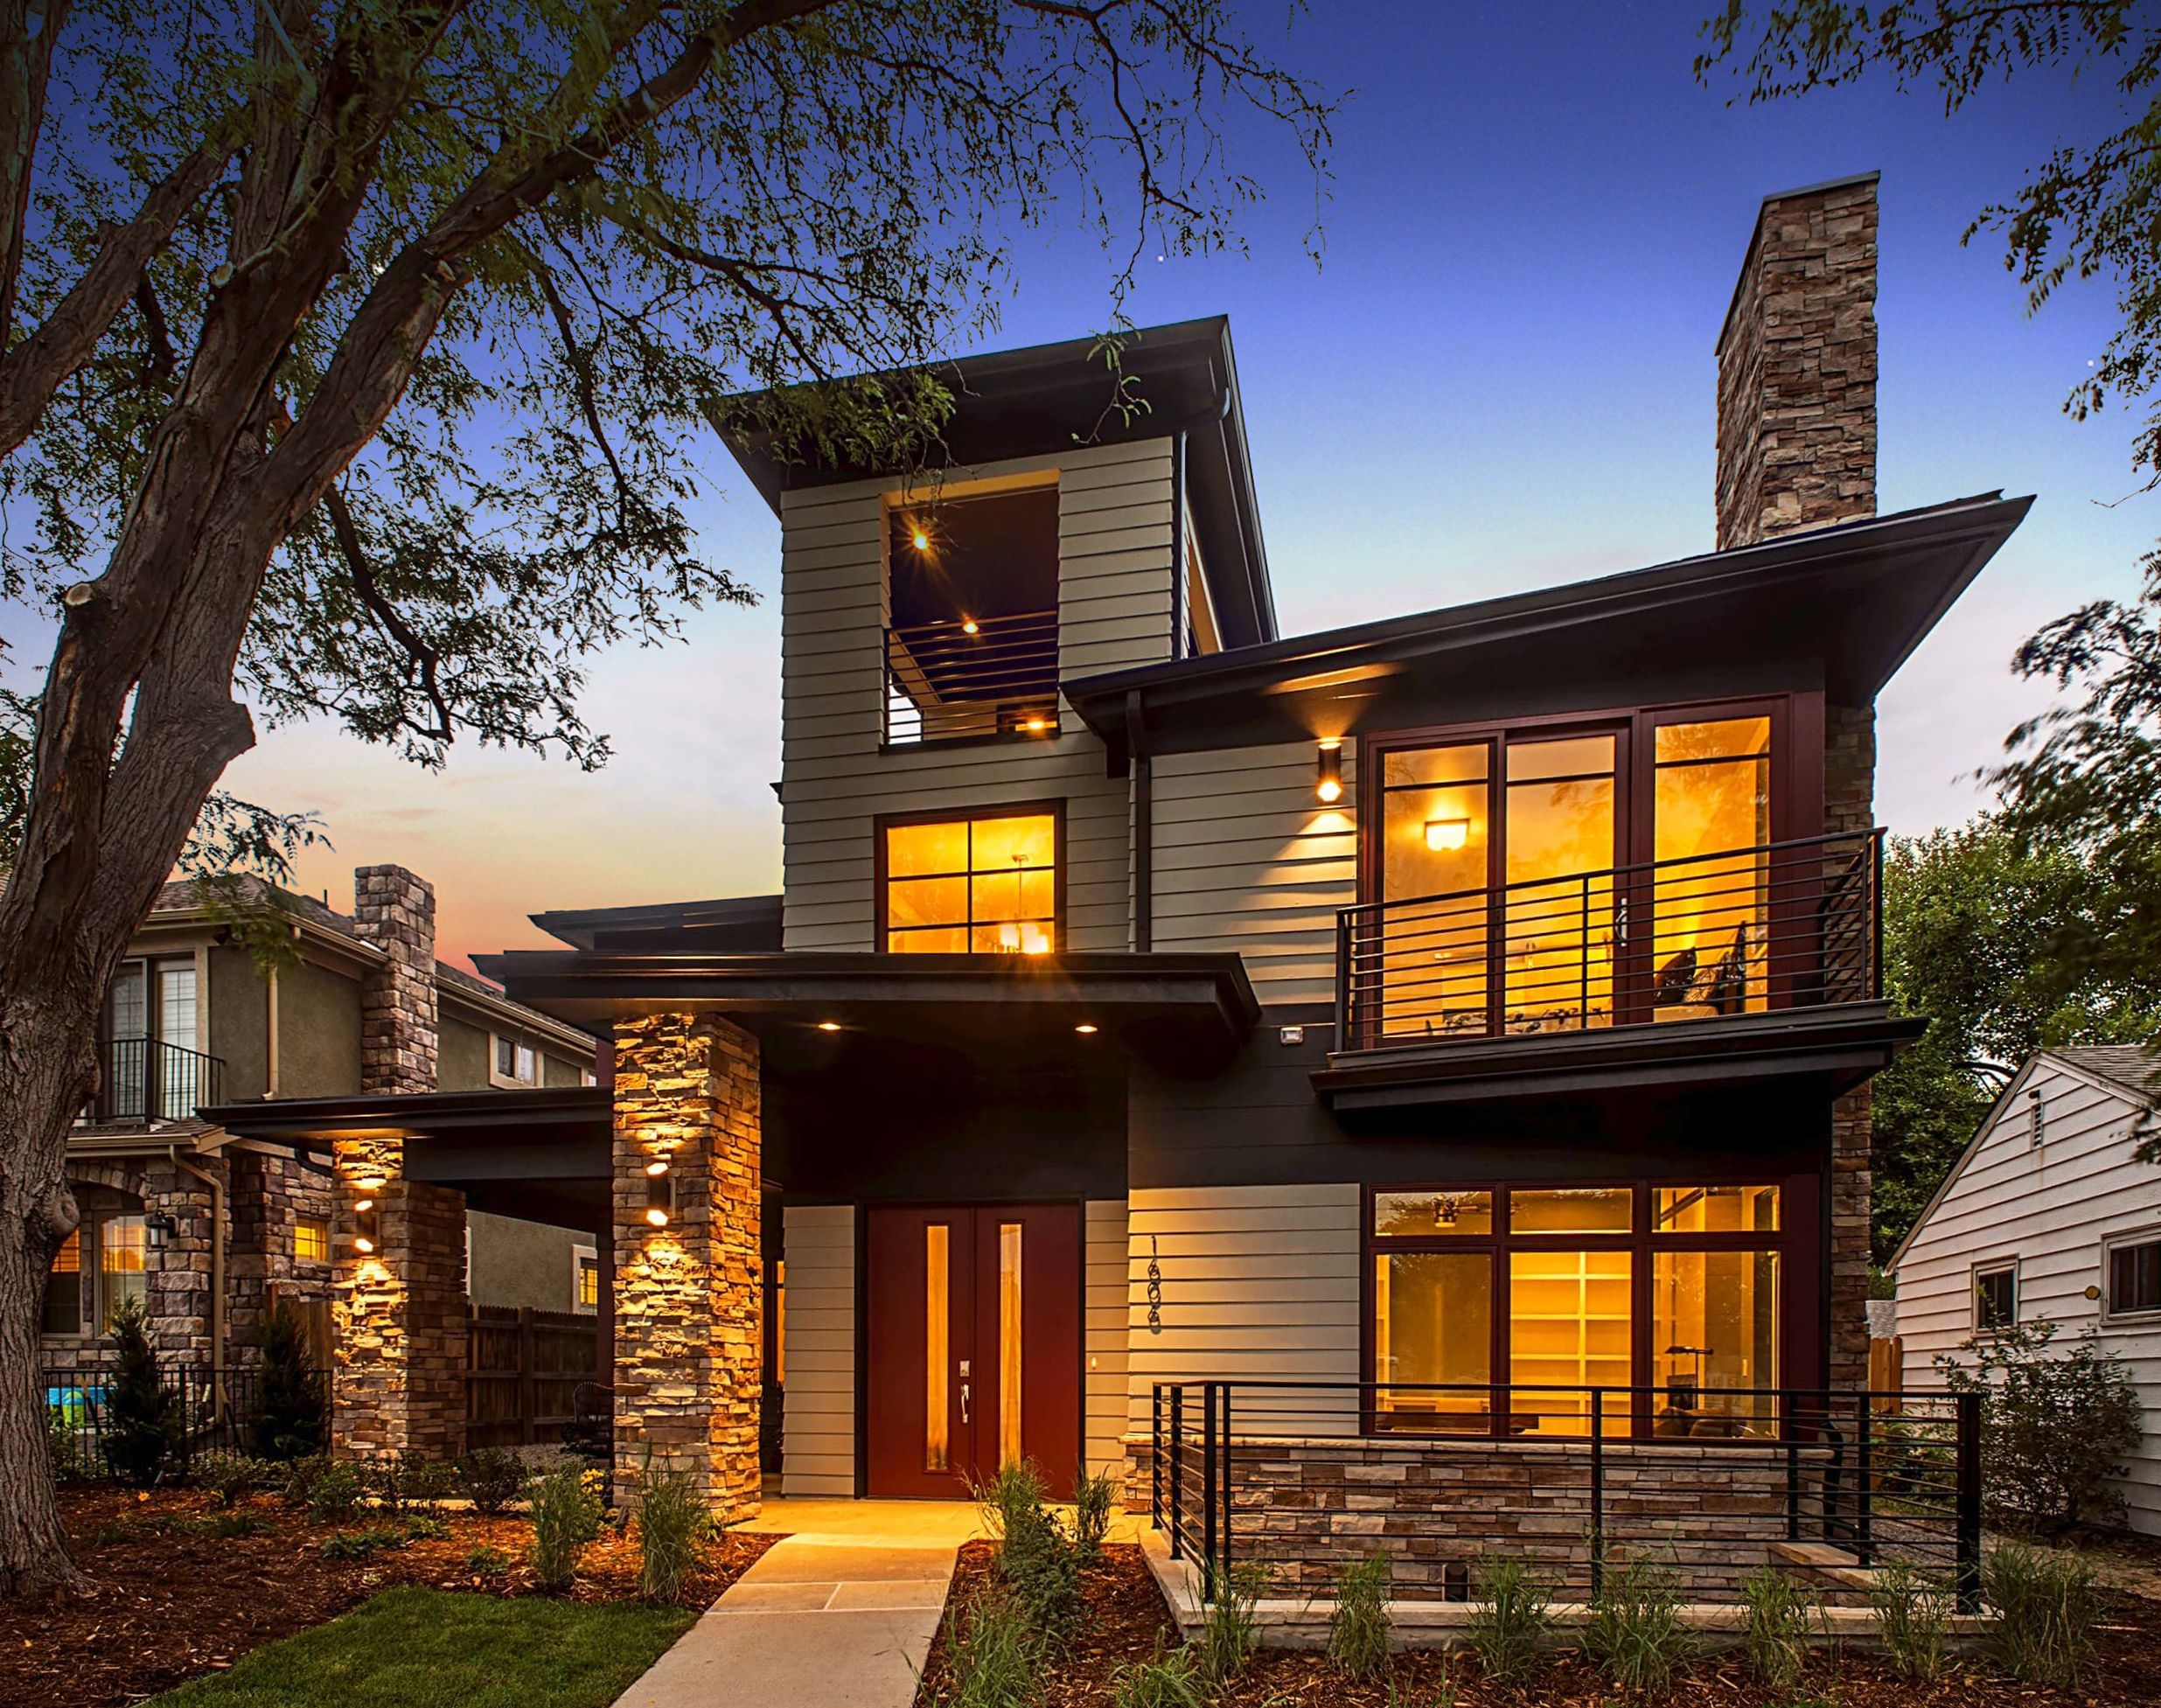 Cory Merrill Contemporary Custom Home By Jackson Design Build In Denver Colorado Fully Accessible Residential Windows Custom Homes Different House Styles